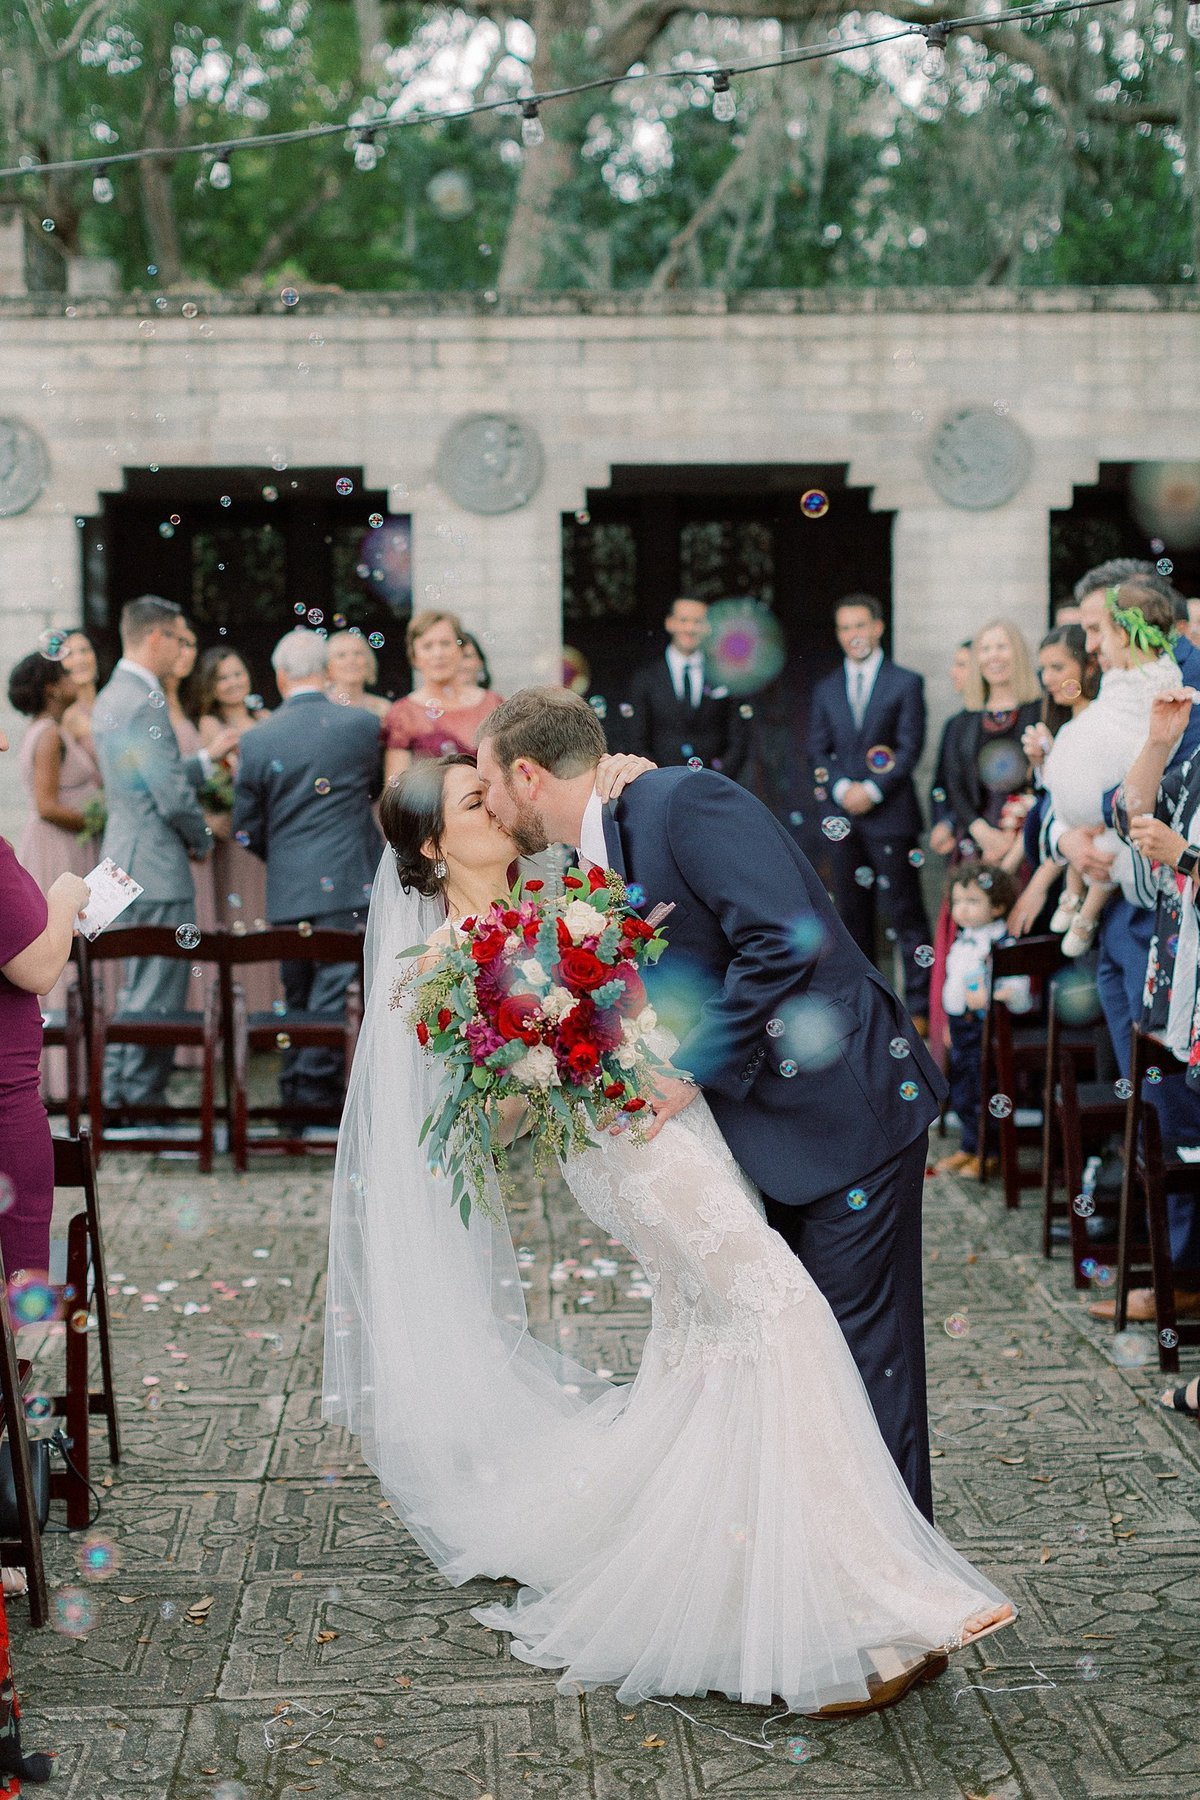 Sergi Wedding Maitland Art and History Museum Casie Marie Photography Orlando Photographer_0037